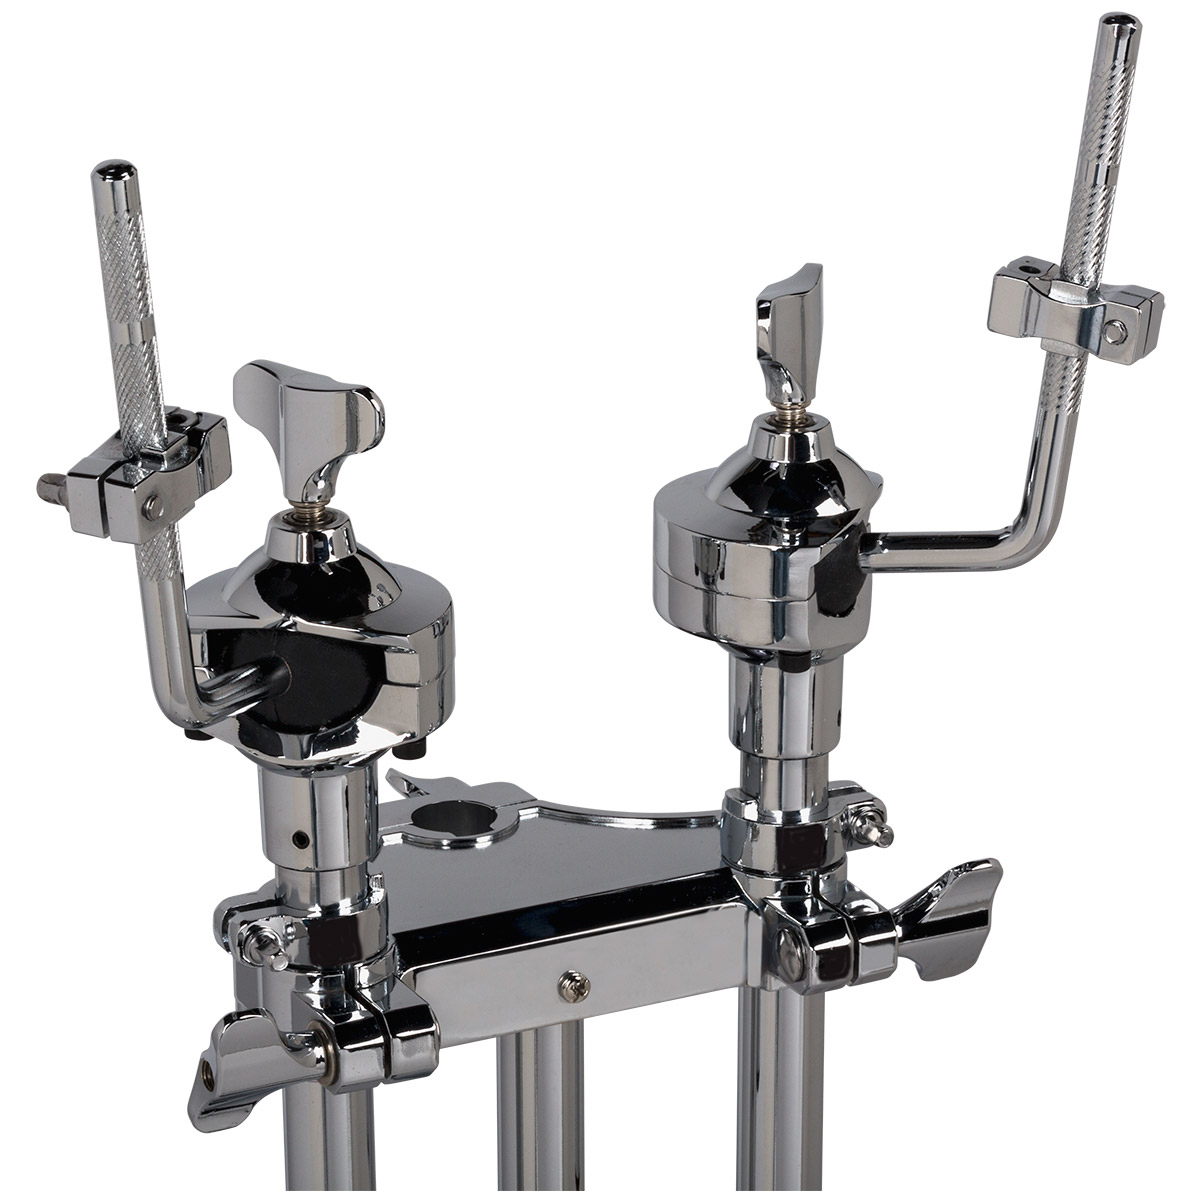 Rack Tom Mount : ddrum rx series double rack tom stand mount with memory locking detachable arms ebay ~ Russianpoet.info Haus und Dekorationen